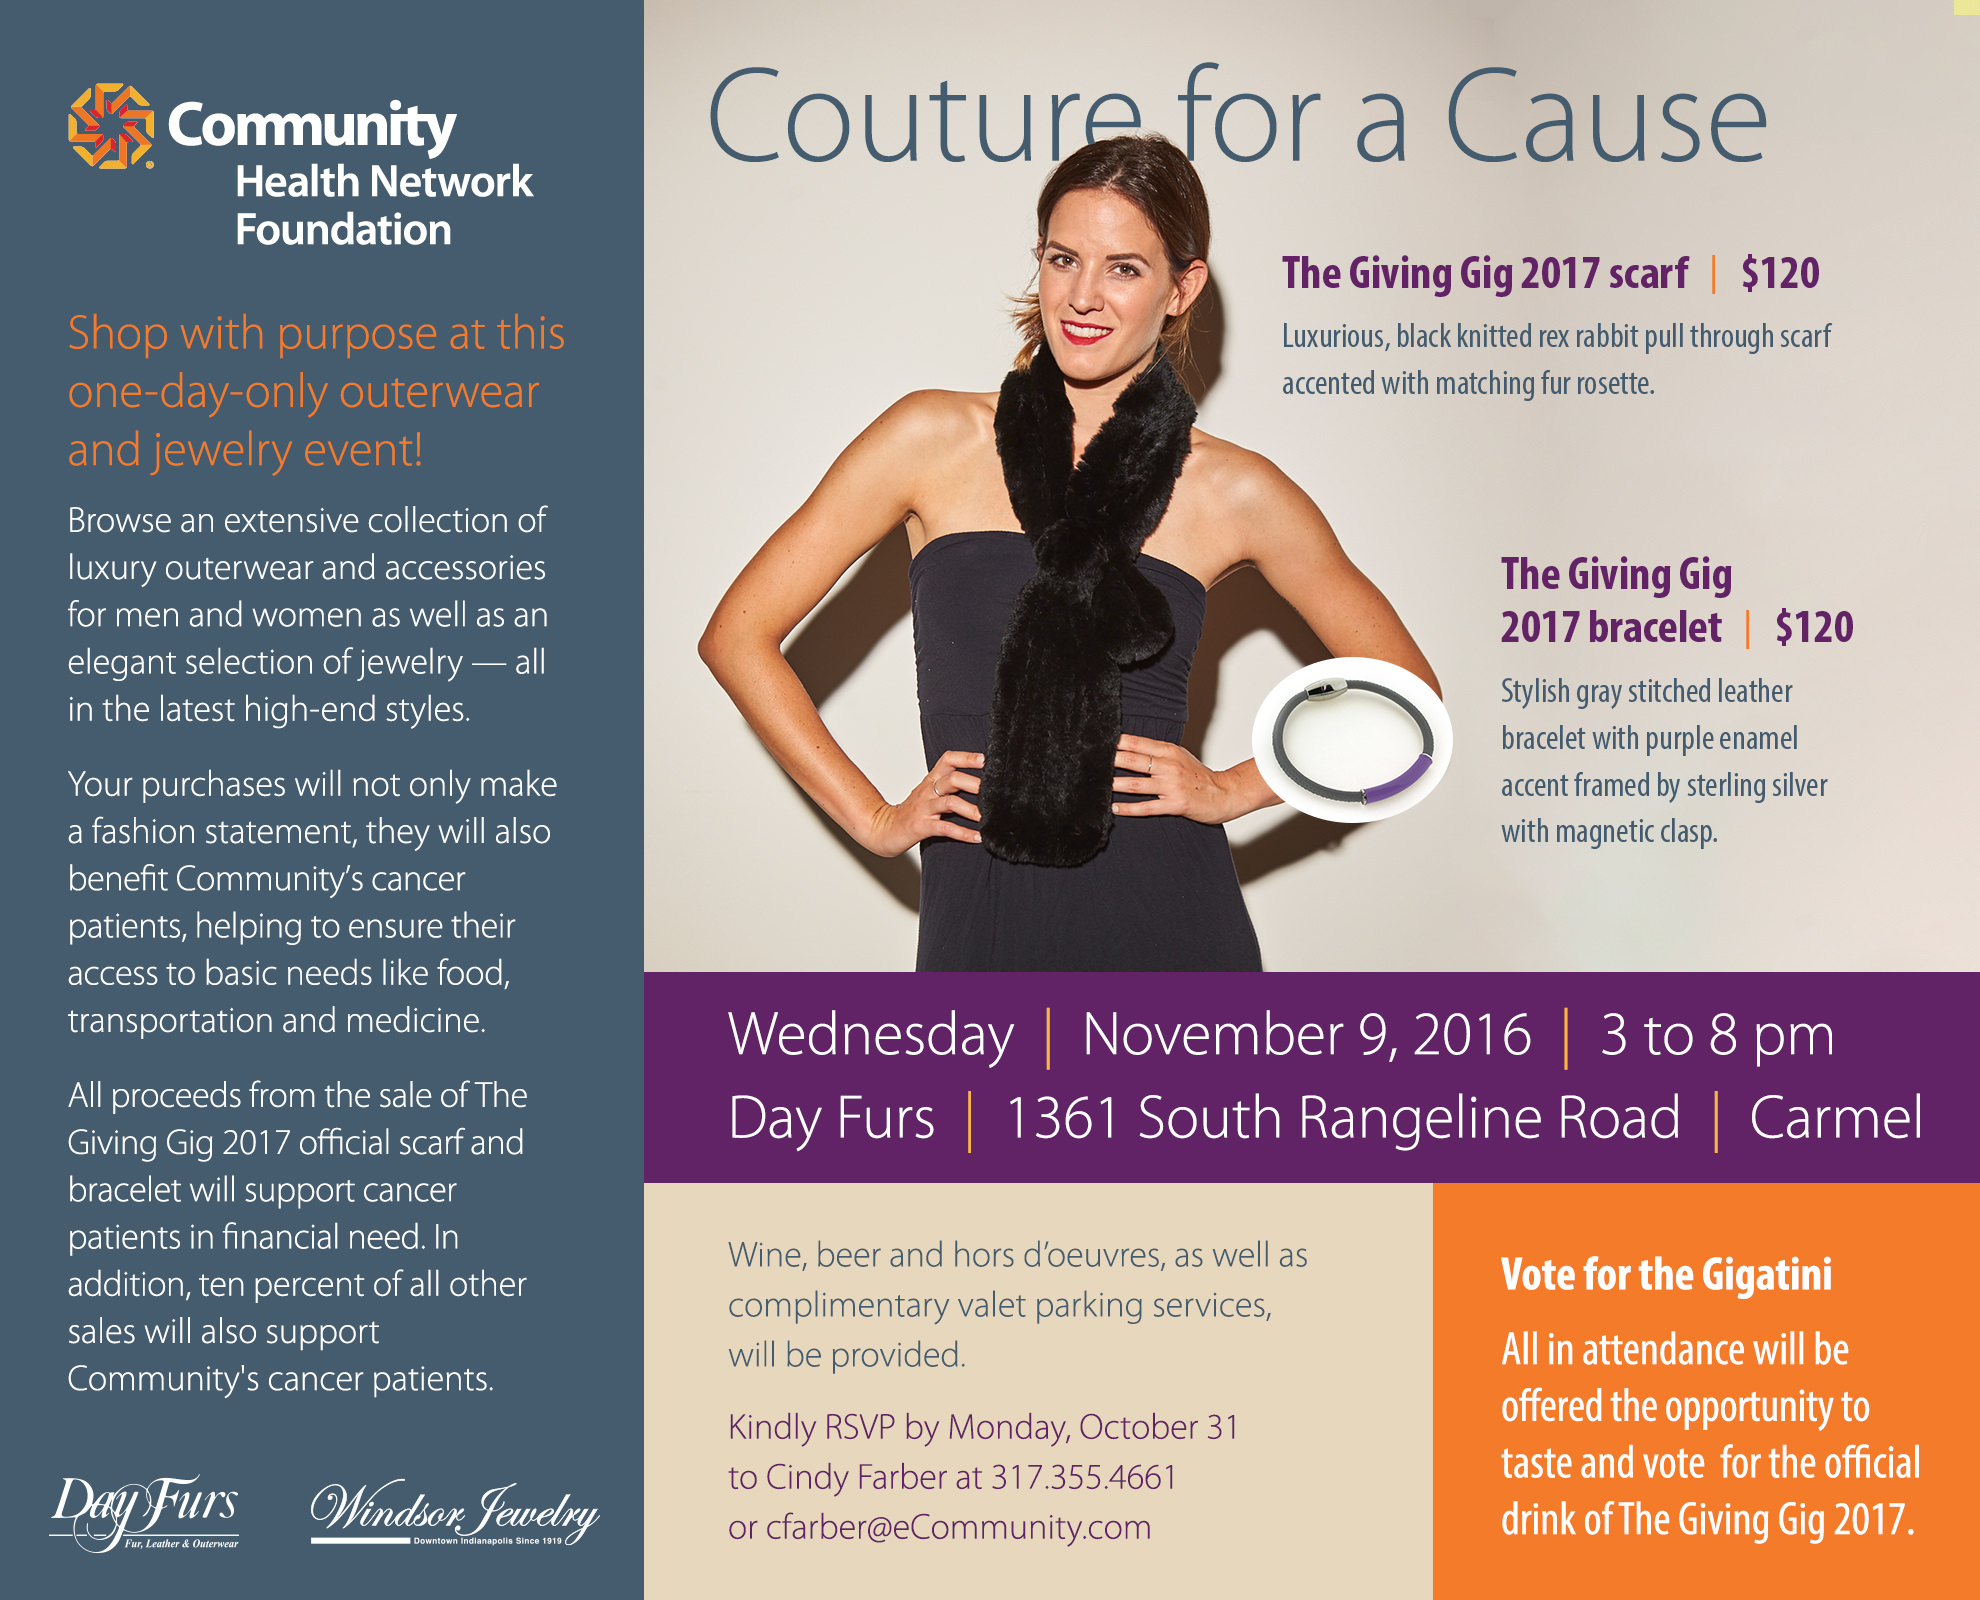 Day-furs-event-community-health-network-giving-gig-couture